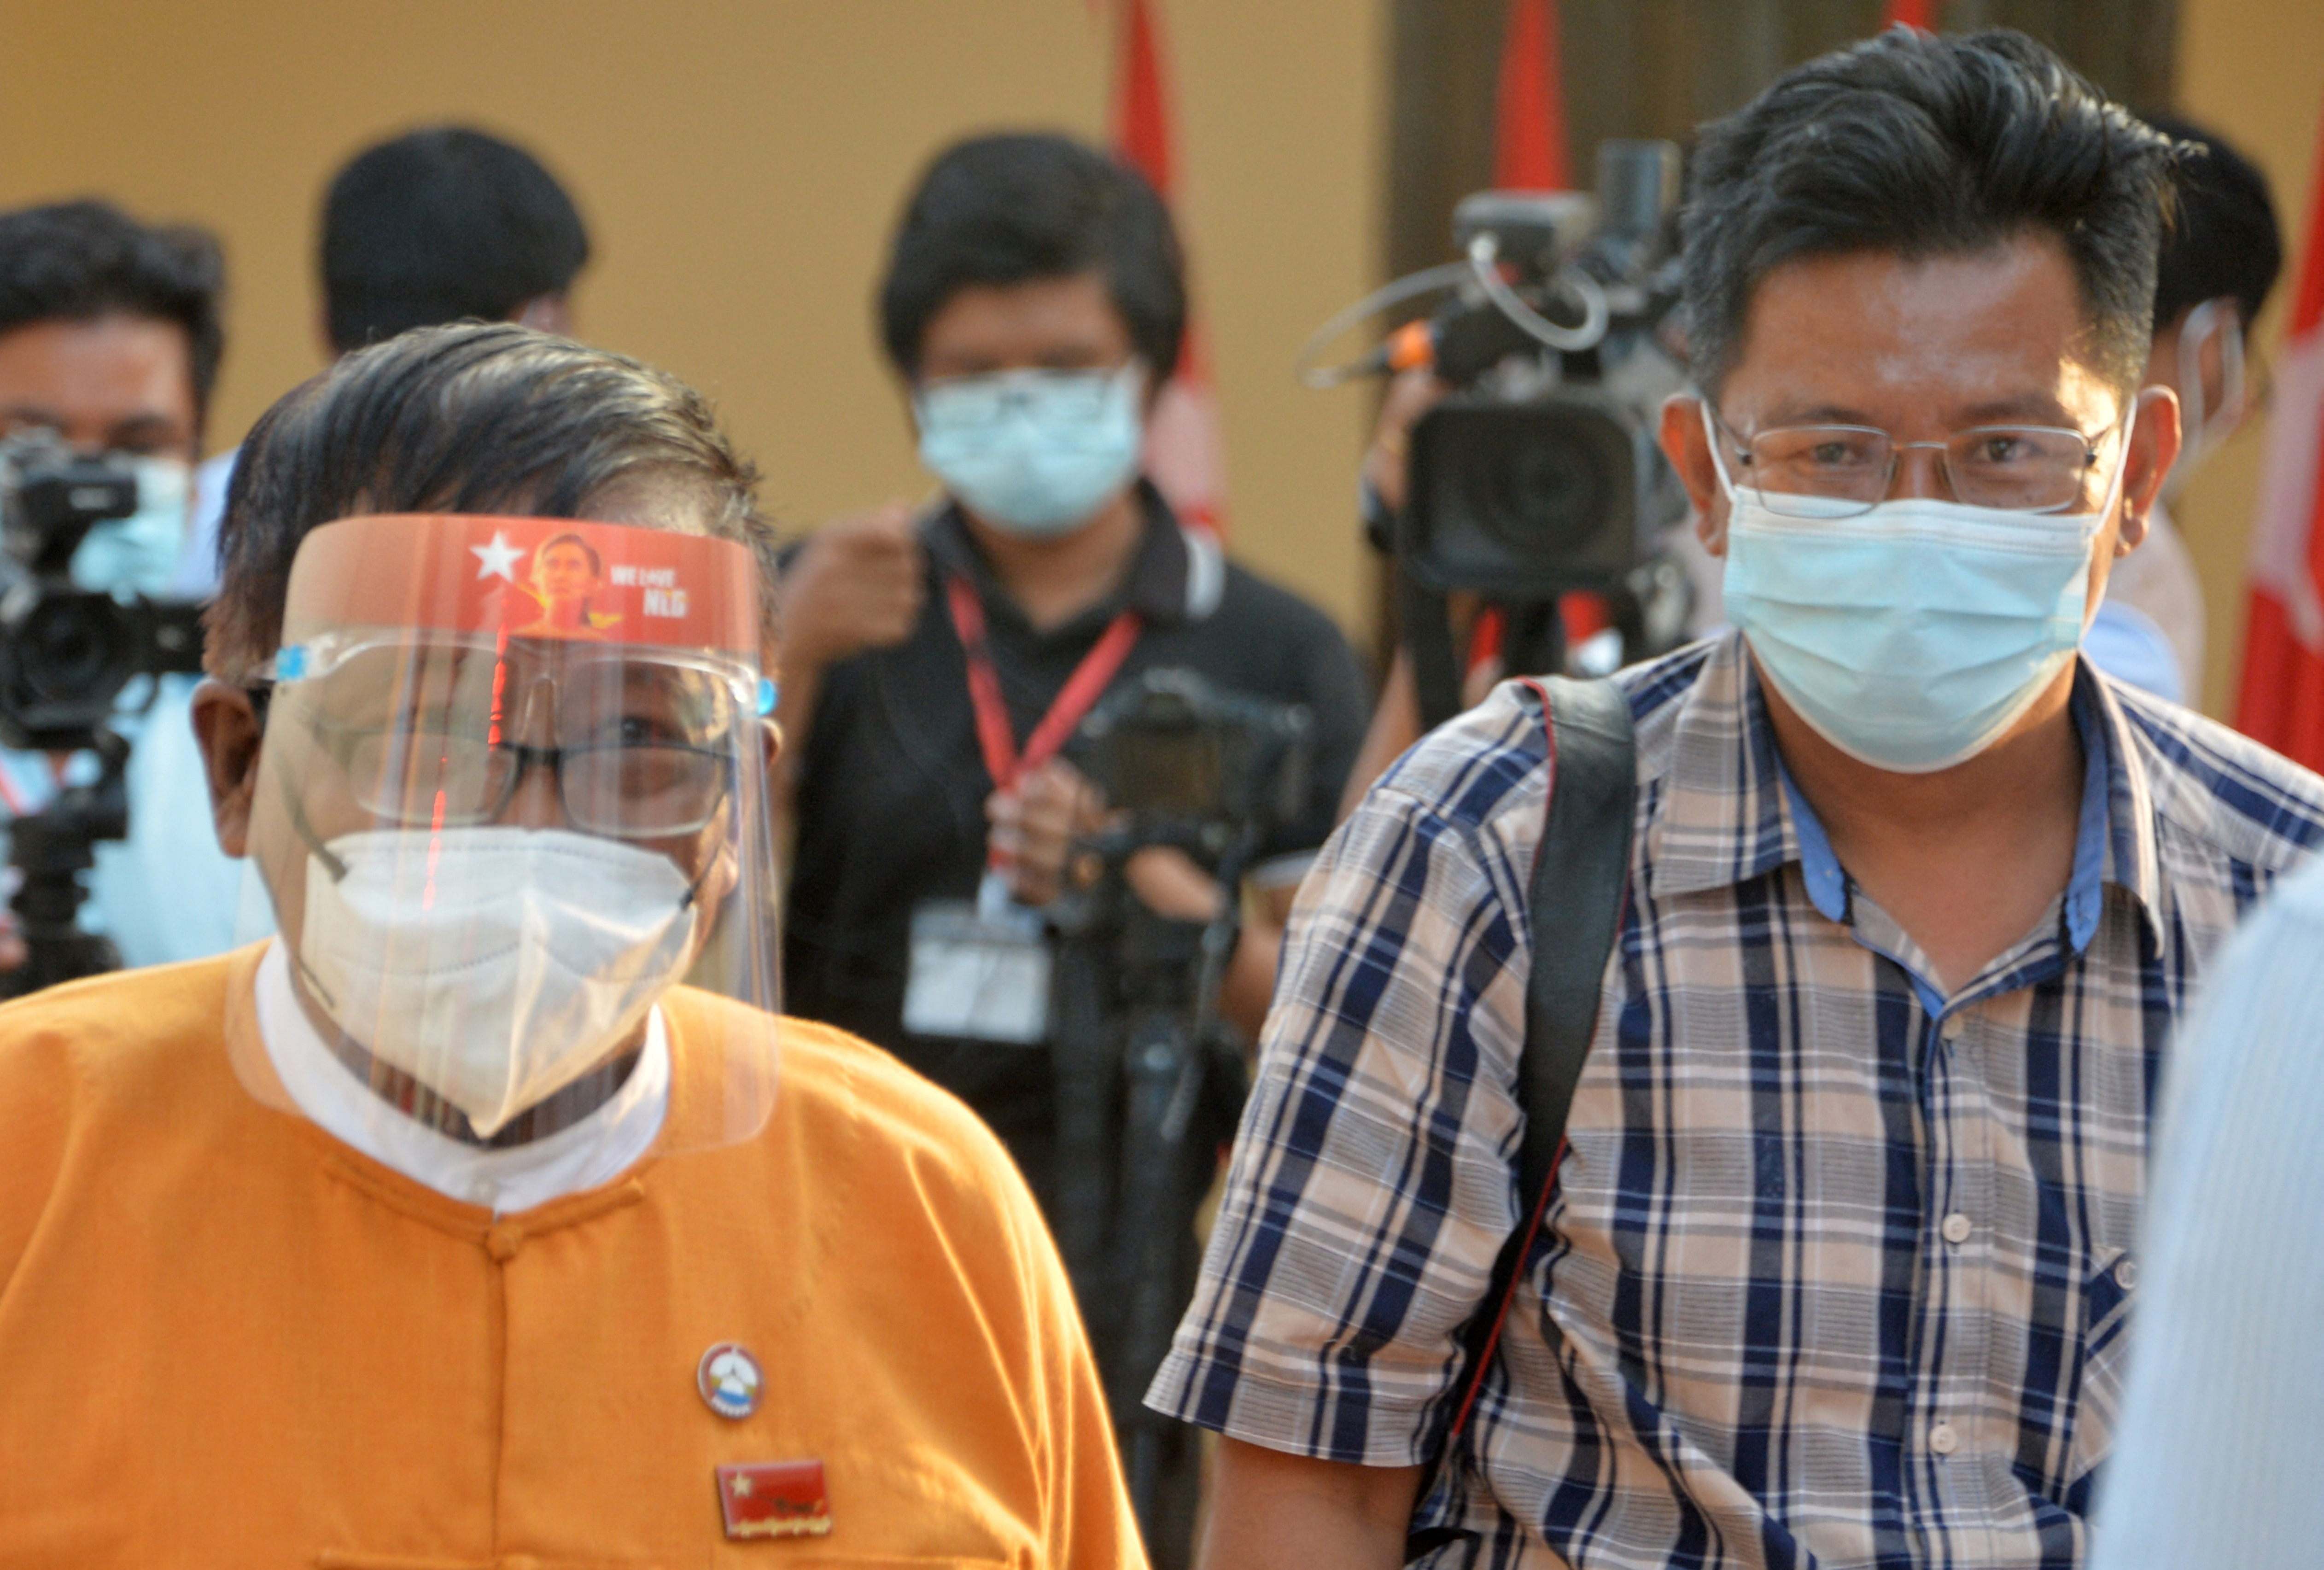 BBC Burmese journalist Aung Thura (right) leaves after a press briefing in Naypyidaw. PHOTO: AFP